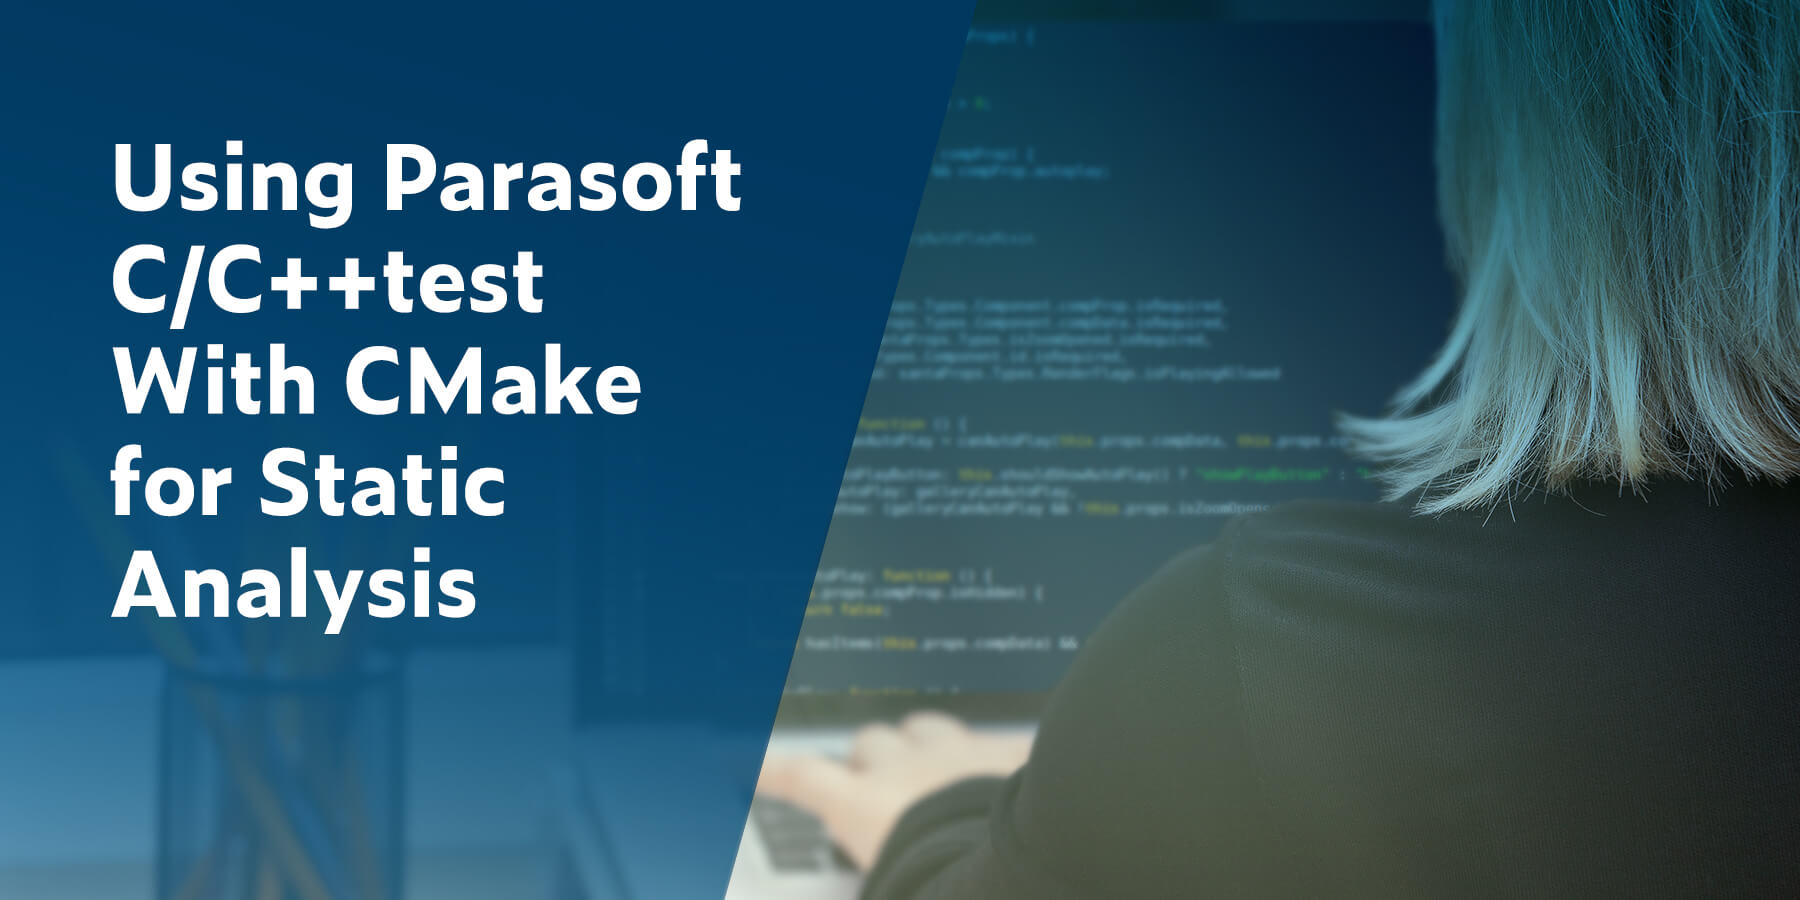 Using Parasoft C/C++test With CMake for Static Analysis